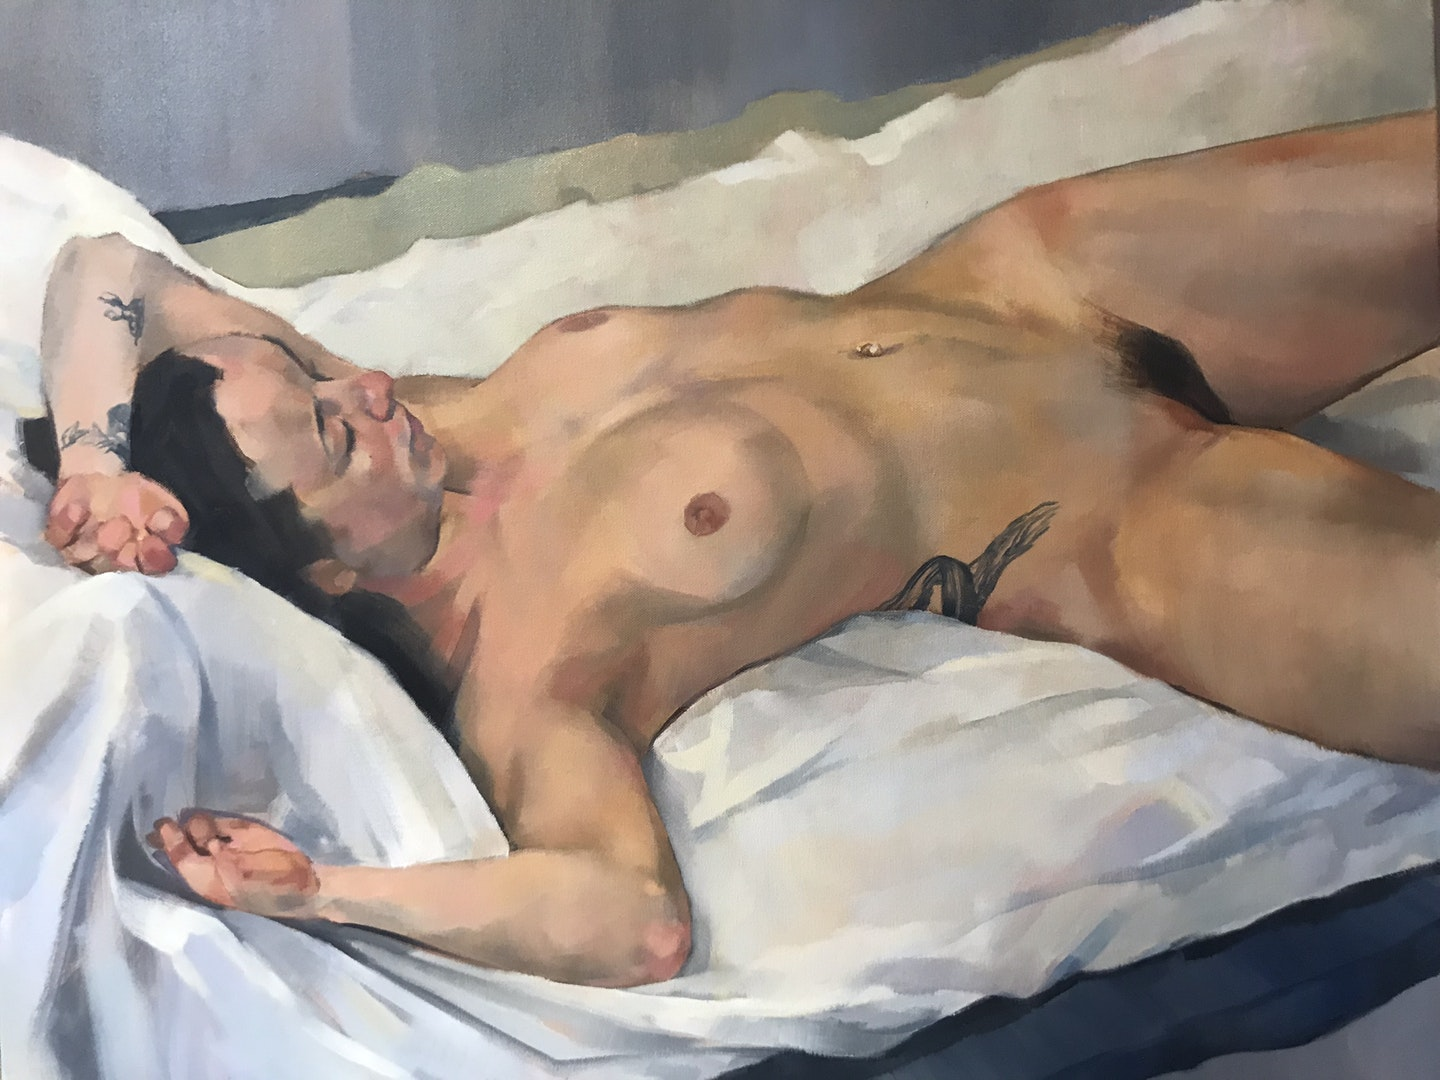 'female nude', Julia Page, Oil on canvas, 60 x 77 x 2 cm